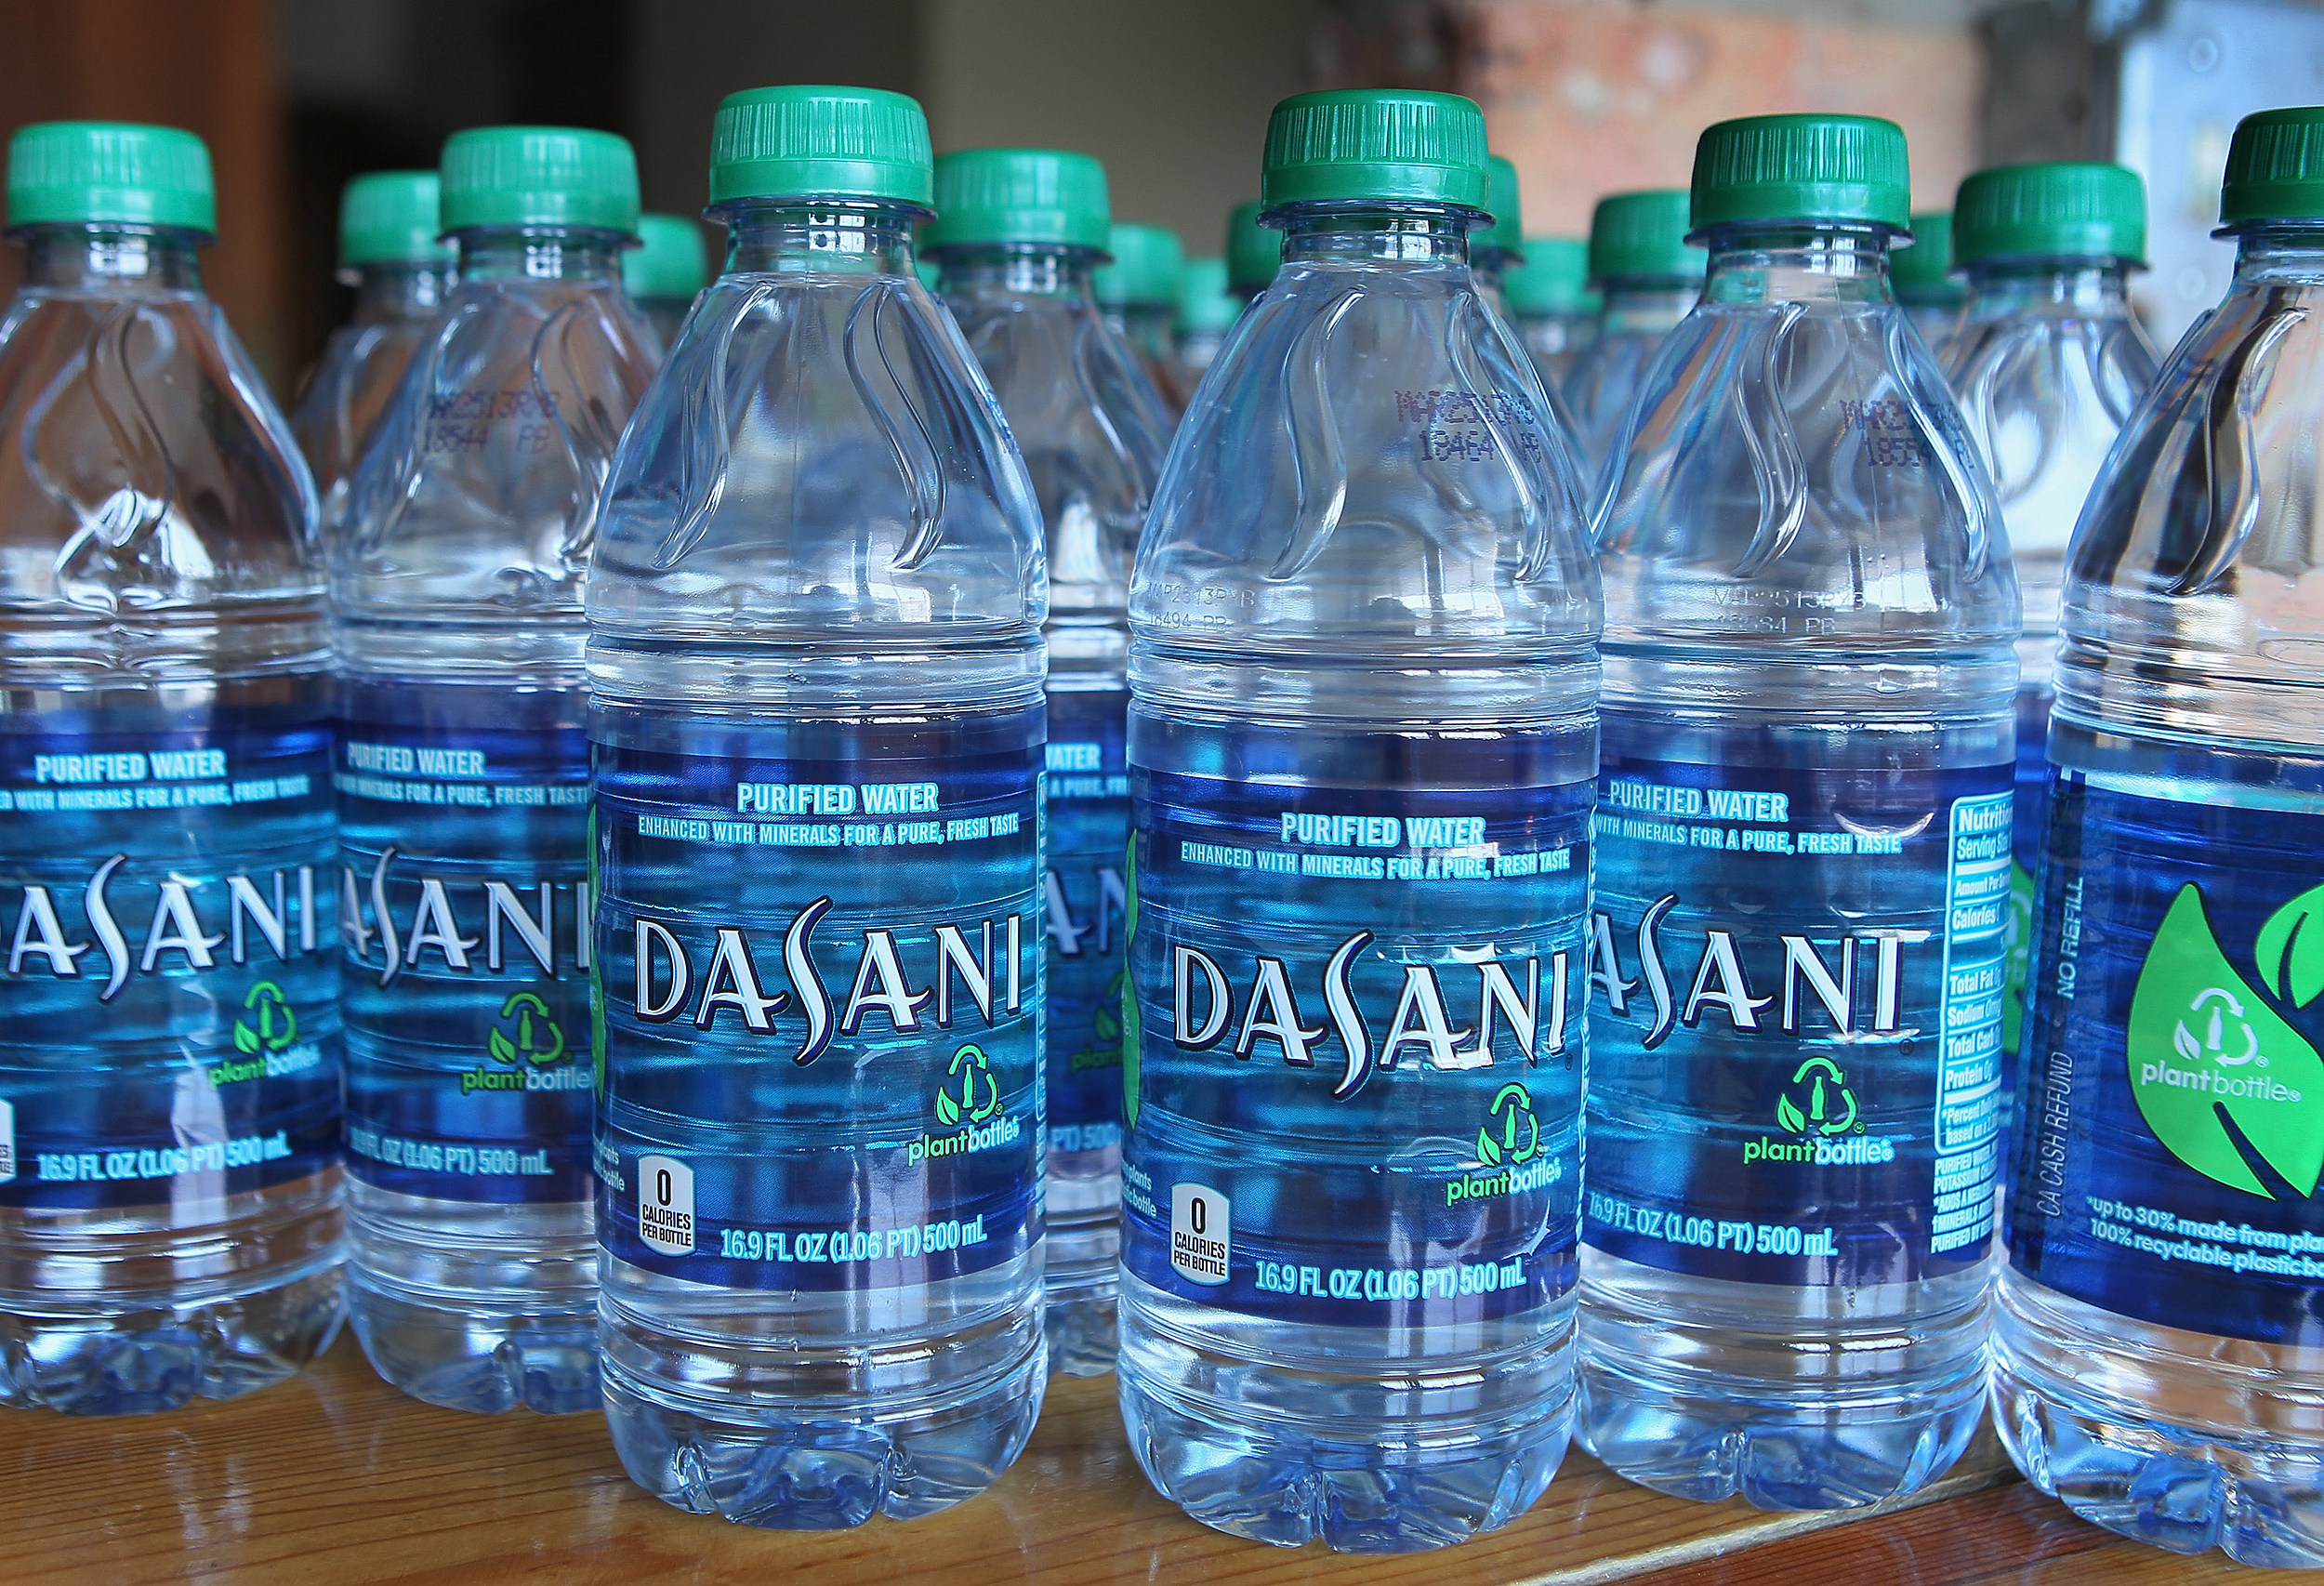 Is There a Parasite in Dasani Bottled Water or Is it Fake News